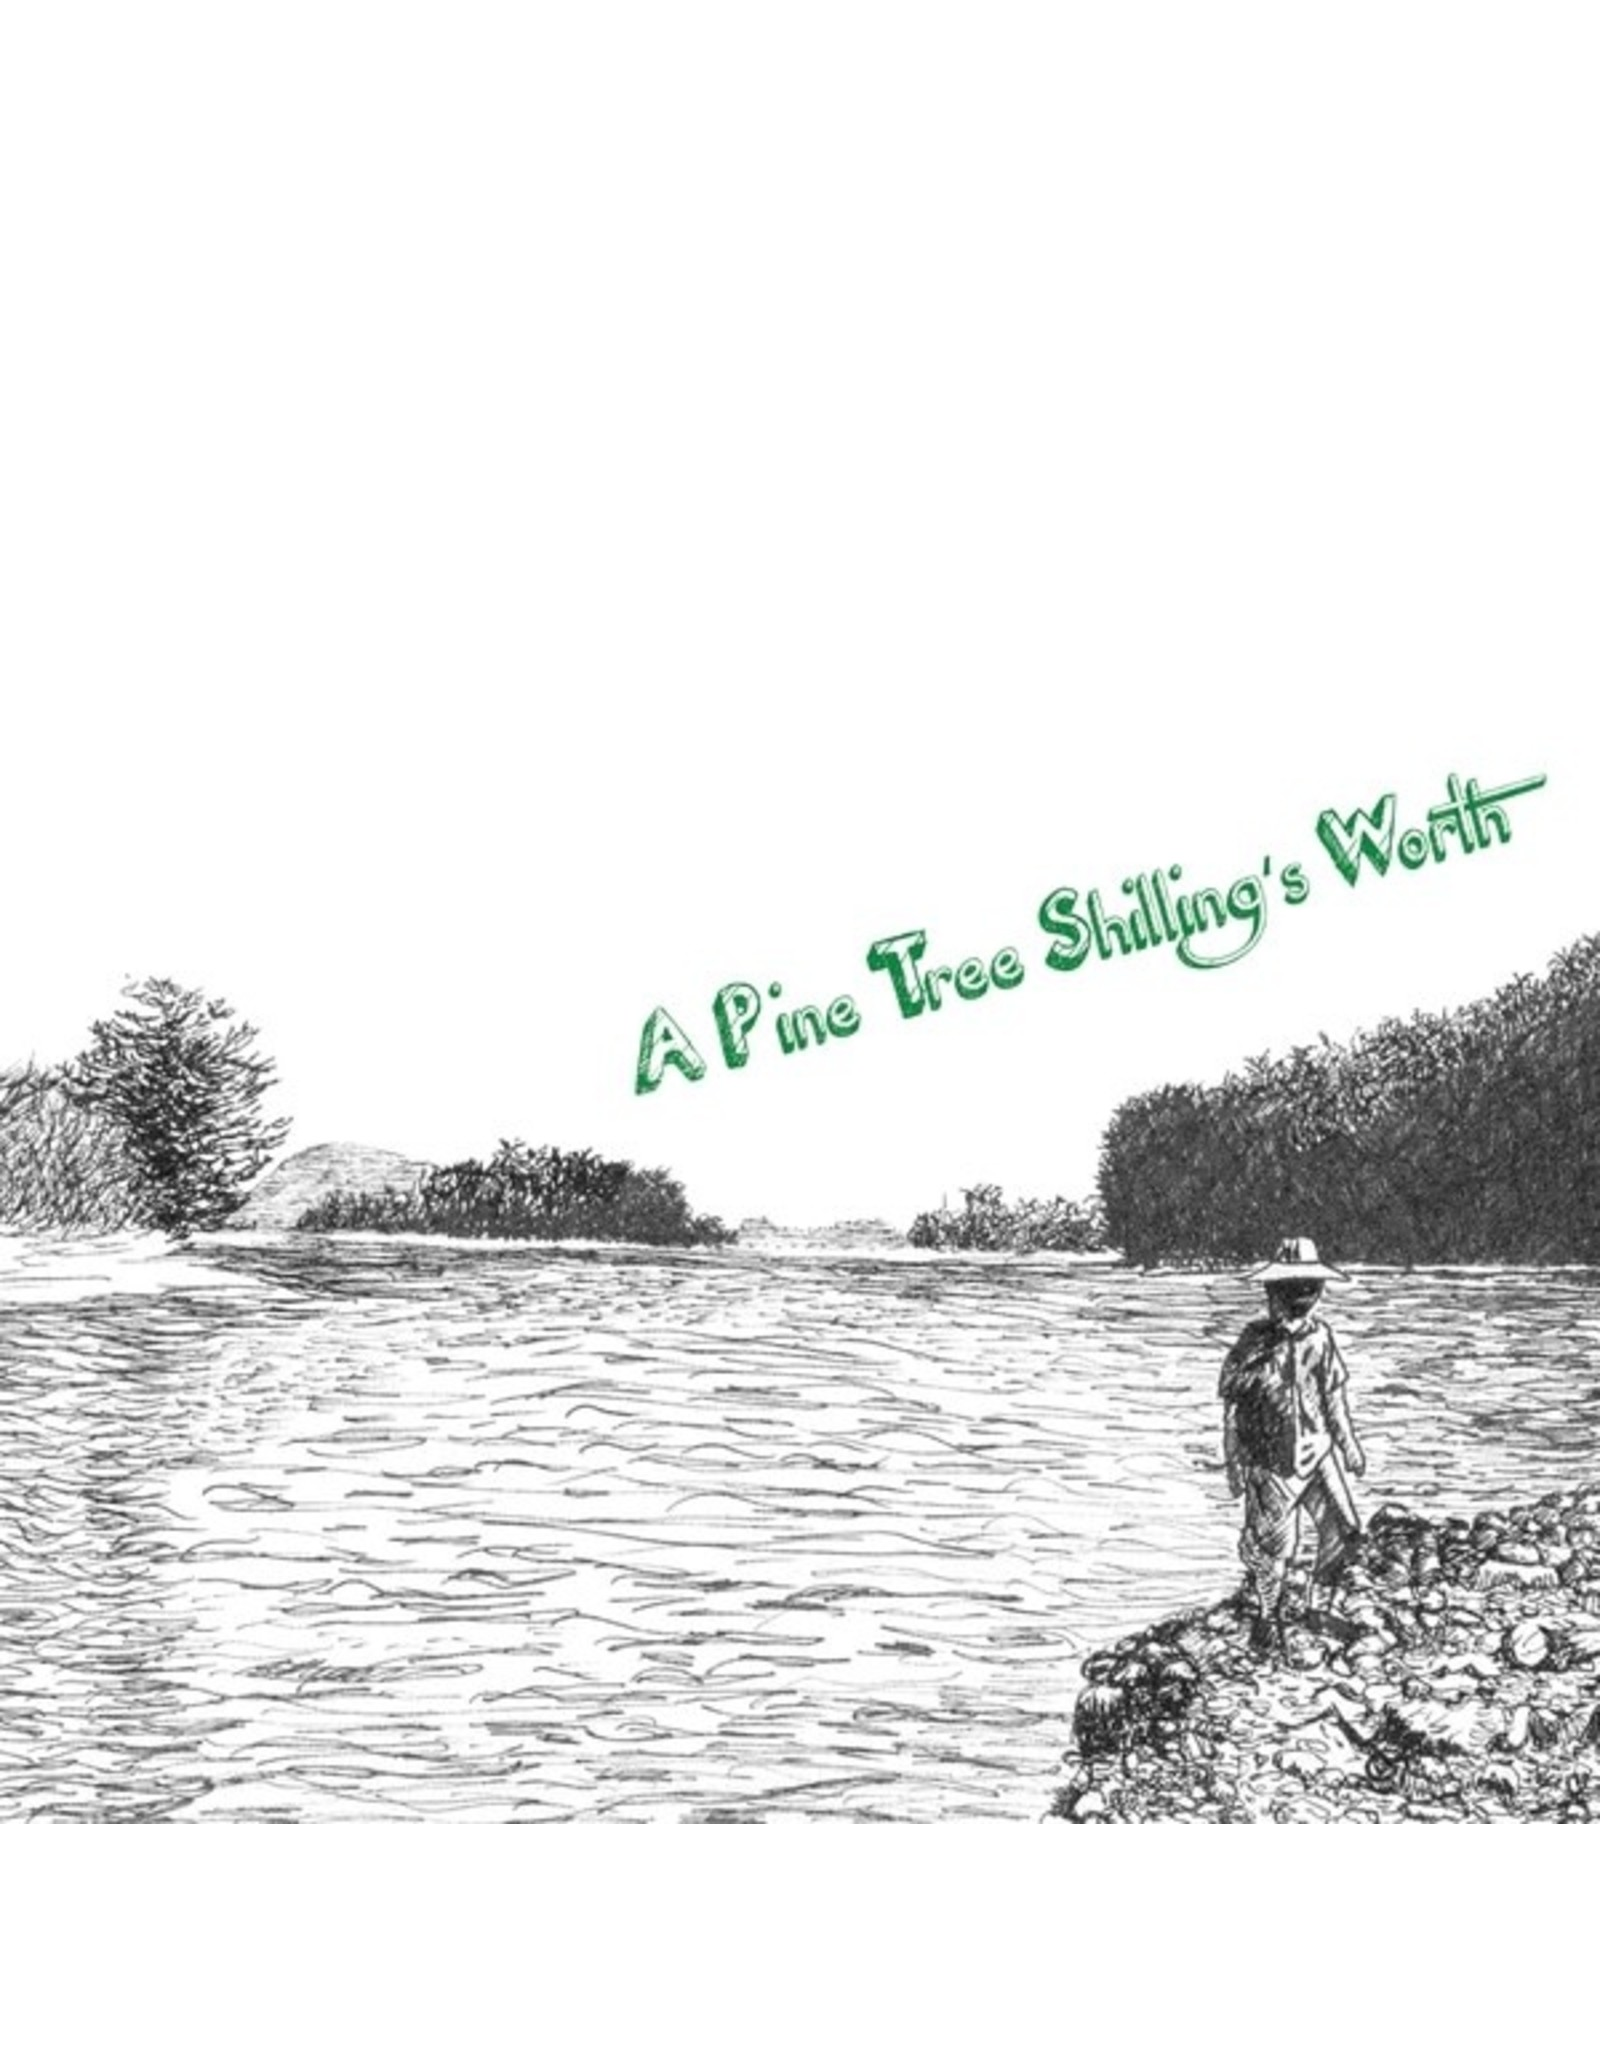 Feeding Tube Lane, Willie: A Pine Tree Shilling's Worth LP